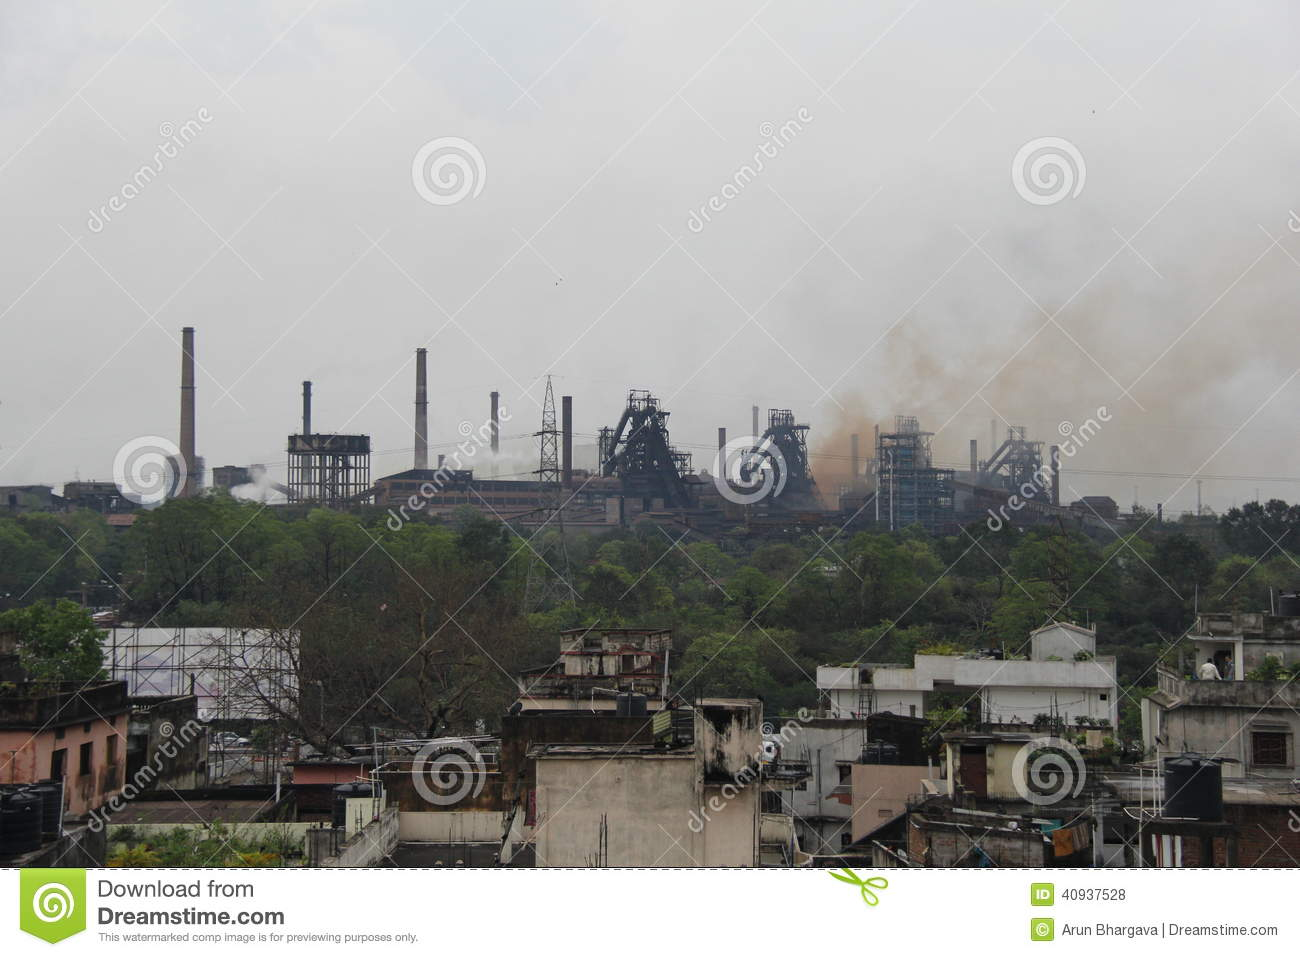 Rourkela India  City pictures : Steam flows out from chimneys at Rourkela Steel Plant, India.